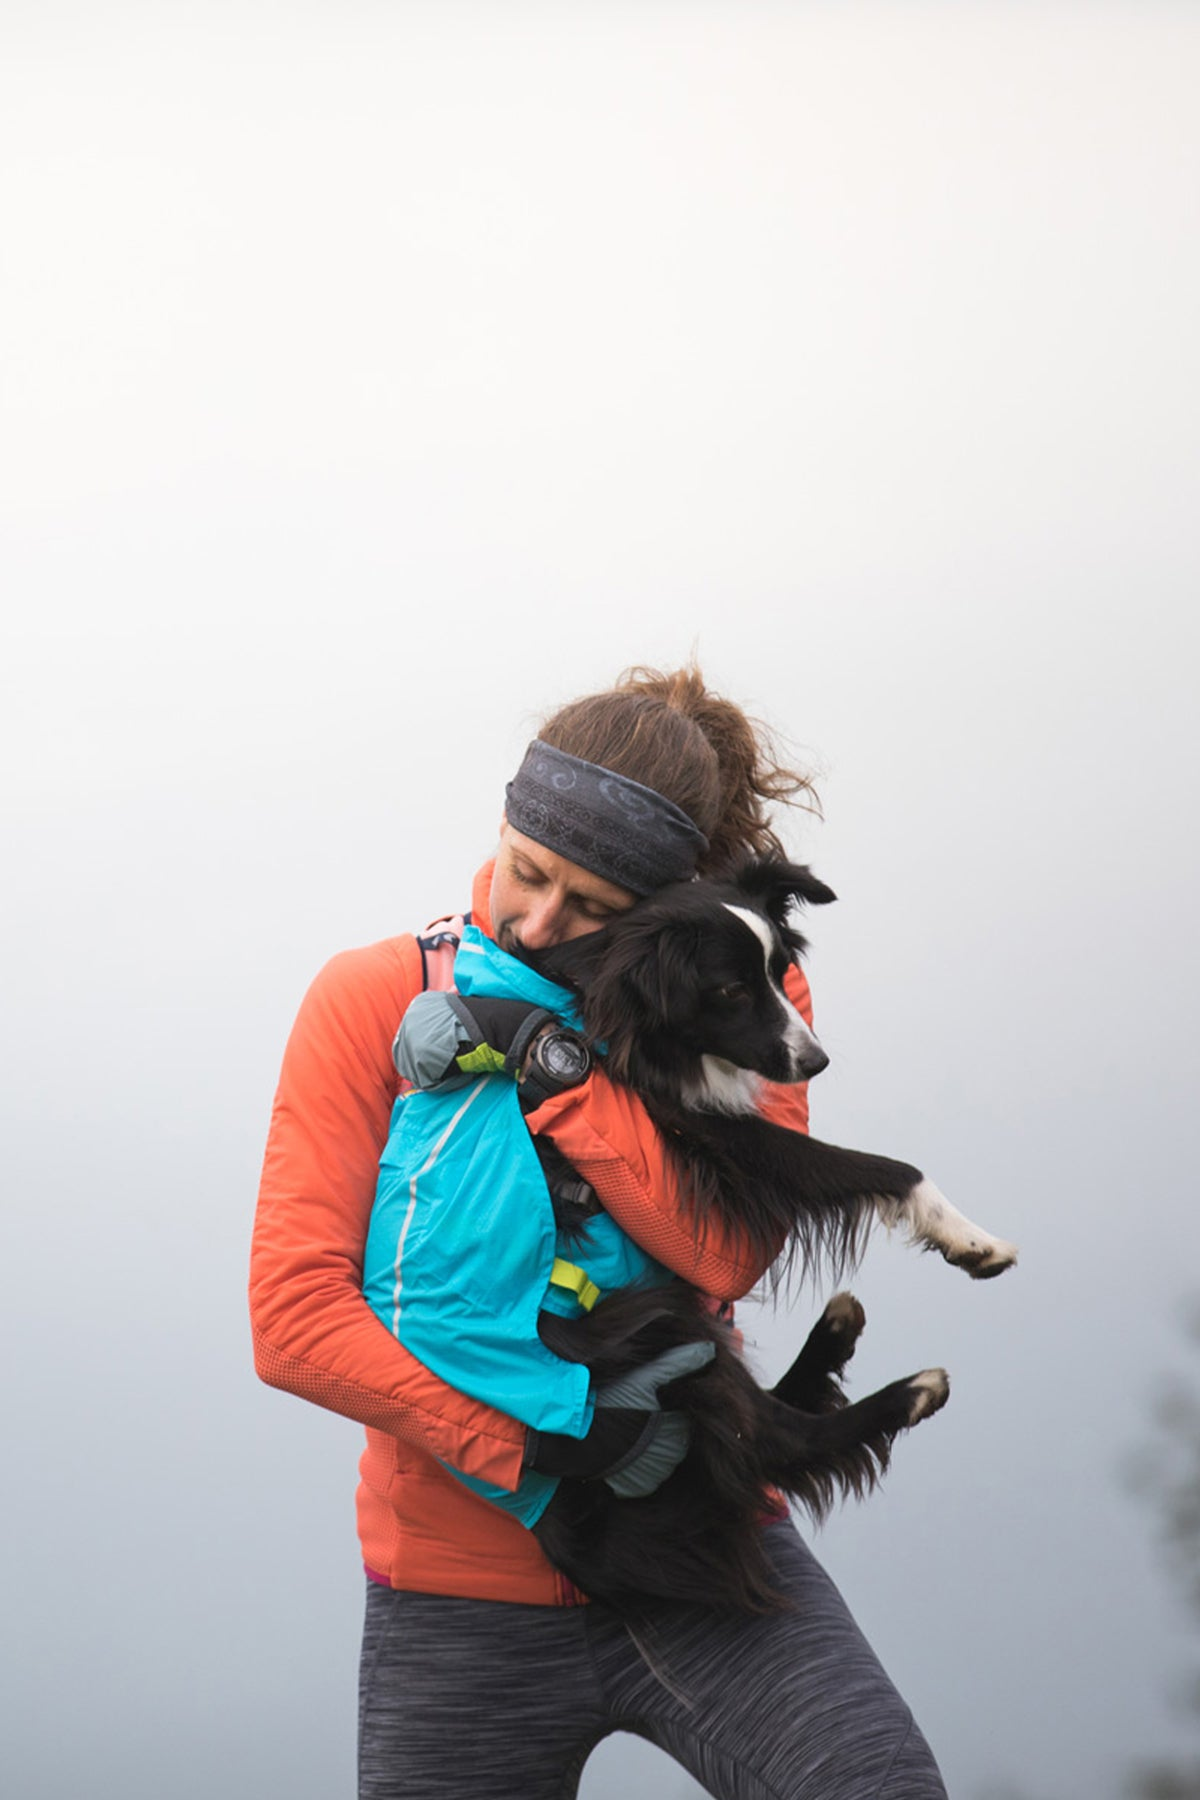 Krissy stops for a mid-run snuggle with PD.